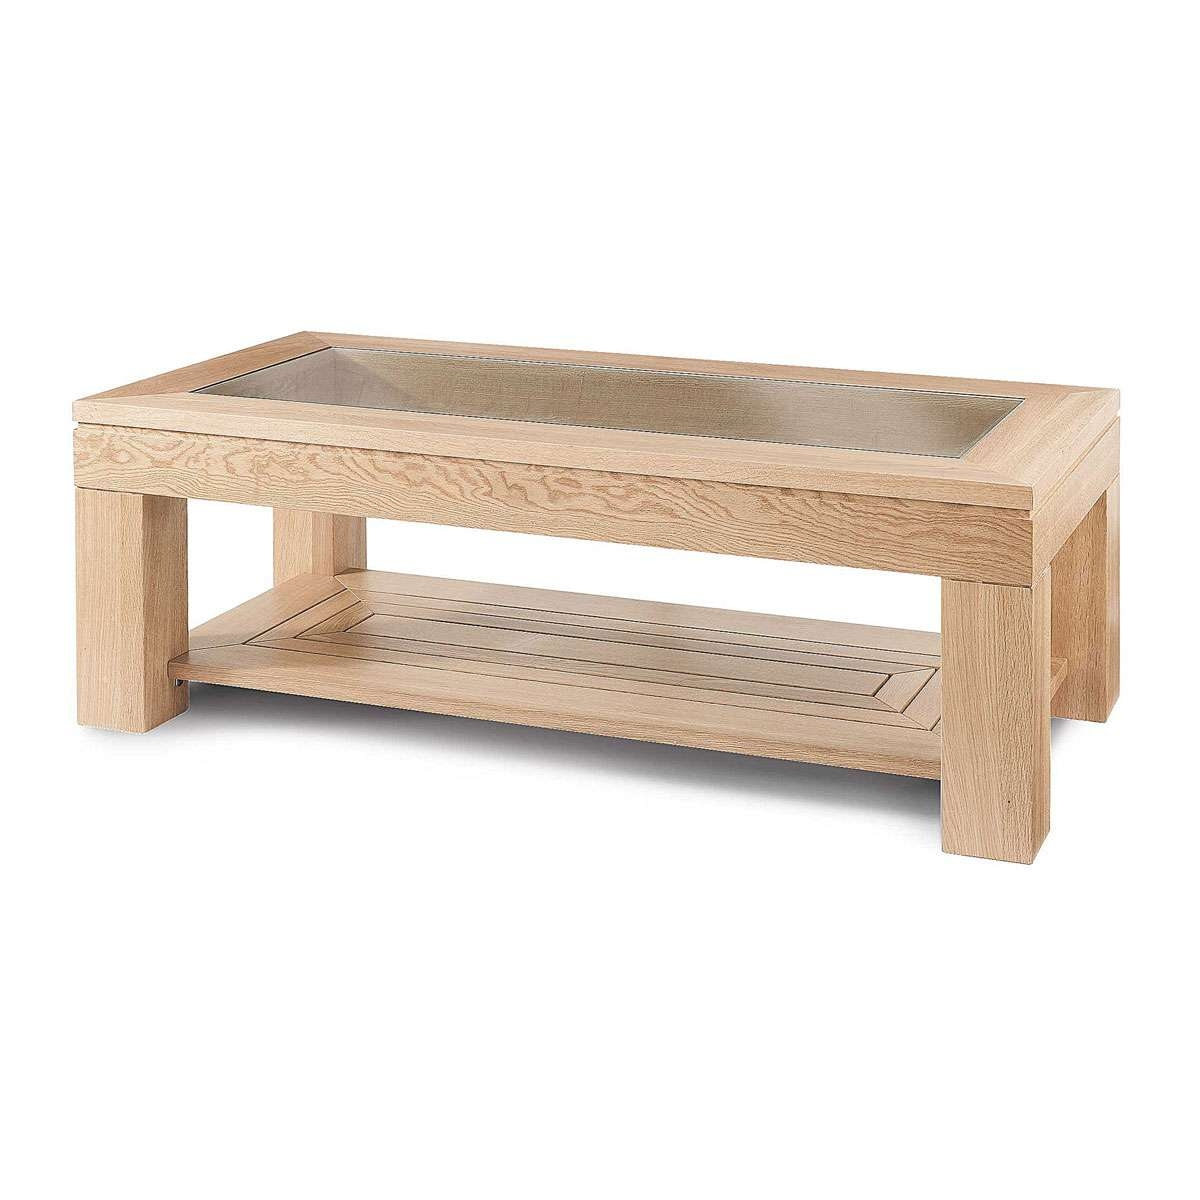 Well Liked Oak And Glass Coffee Table Throughout 20 Great Rectangular Oak Coffee Tables (View 19 of 20)